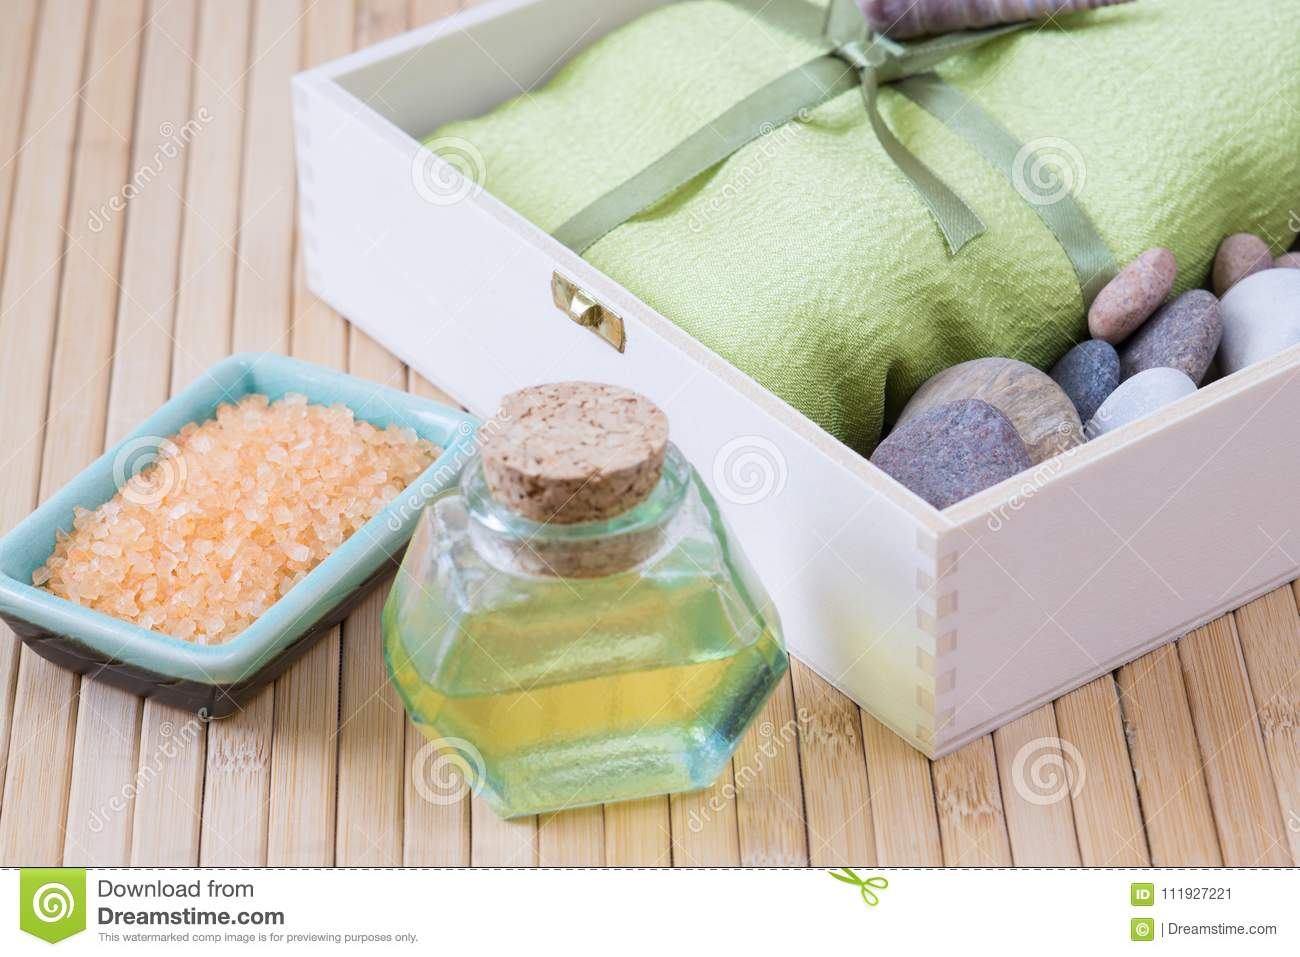 Healthy outfit for relaxation and SPA procedures with towel, stones and body oil